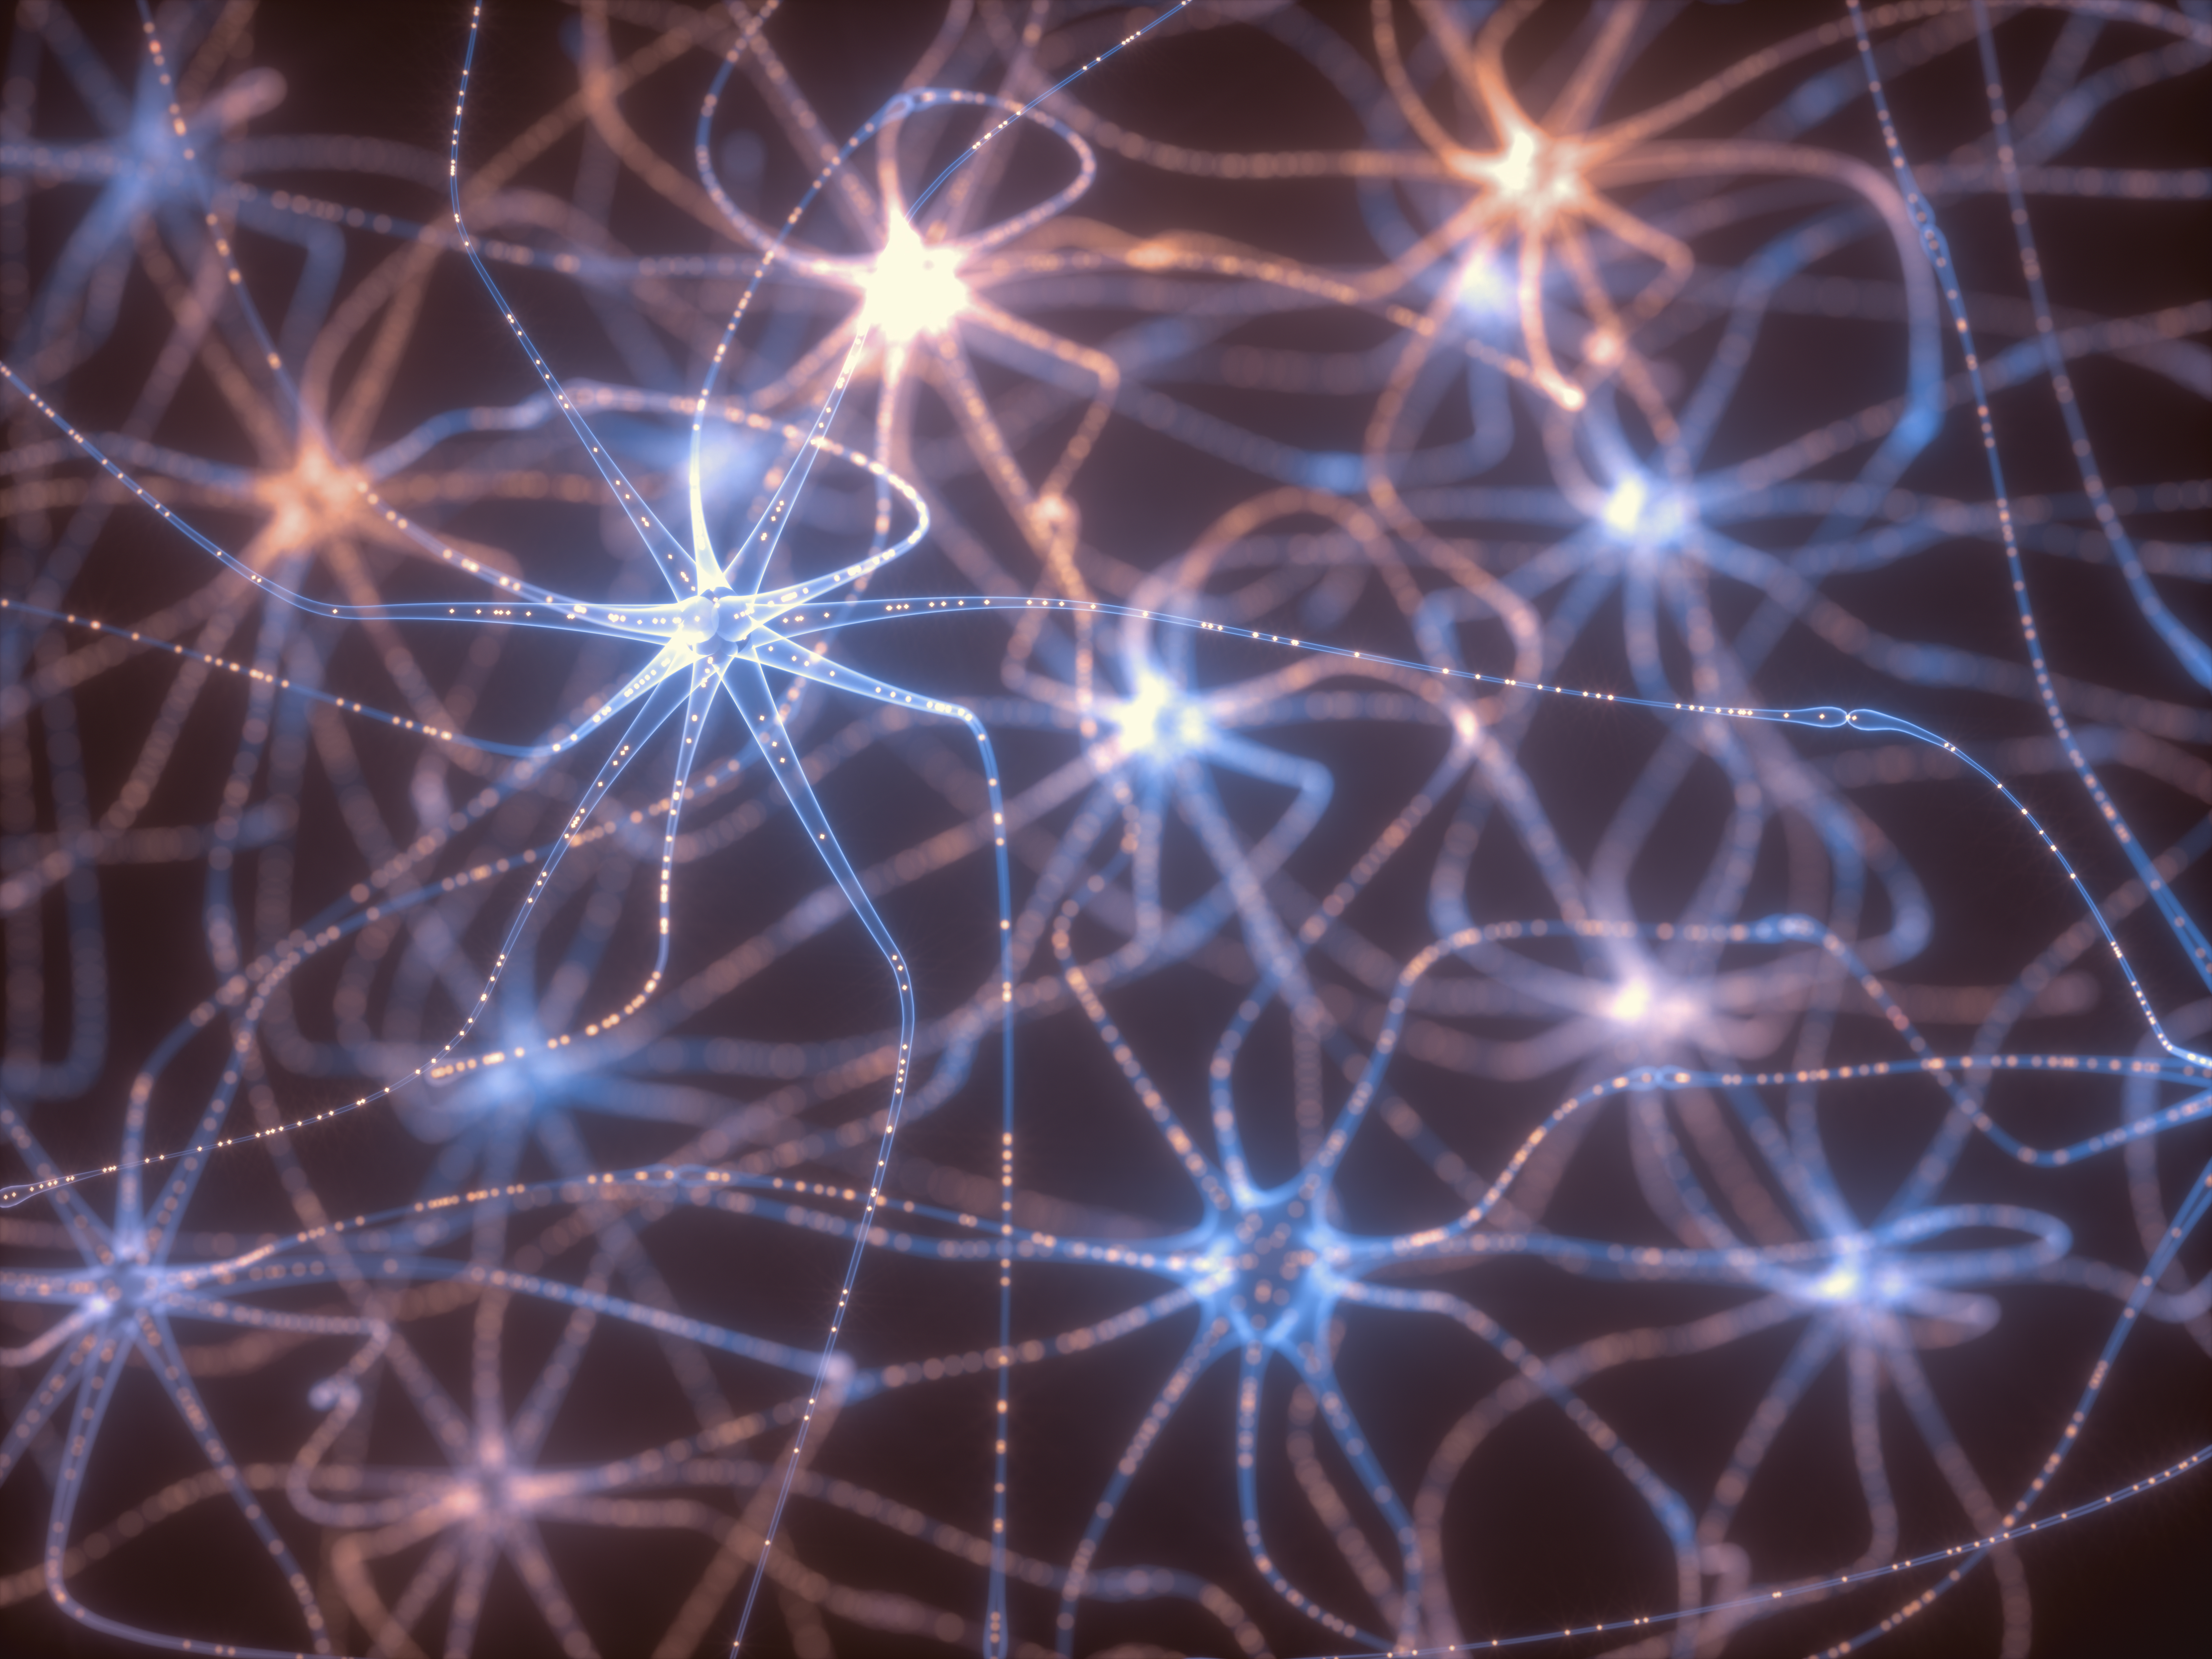 neurons-electrical-pulses-P4VZFBS